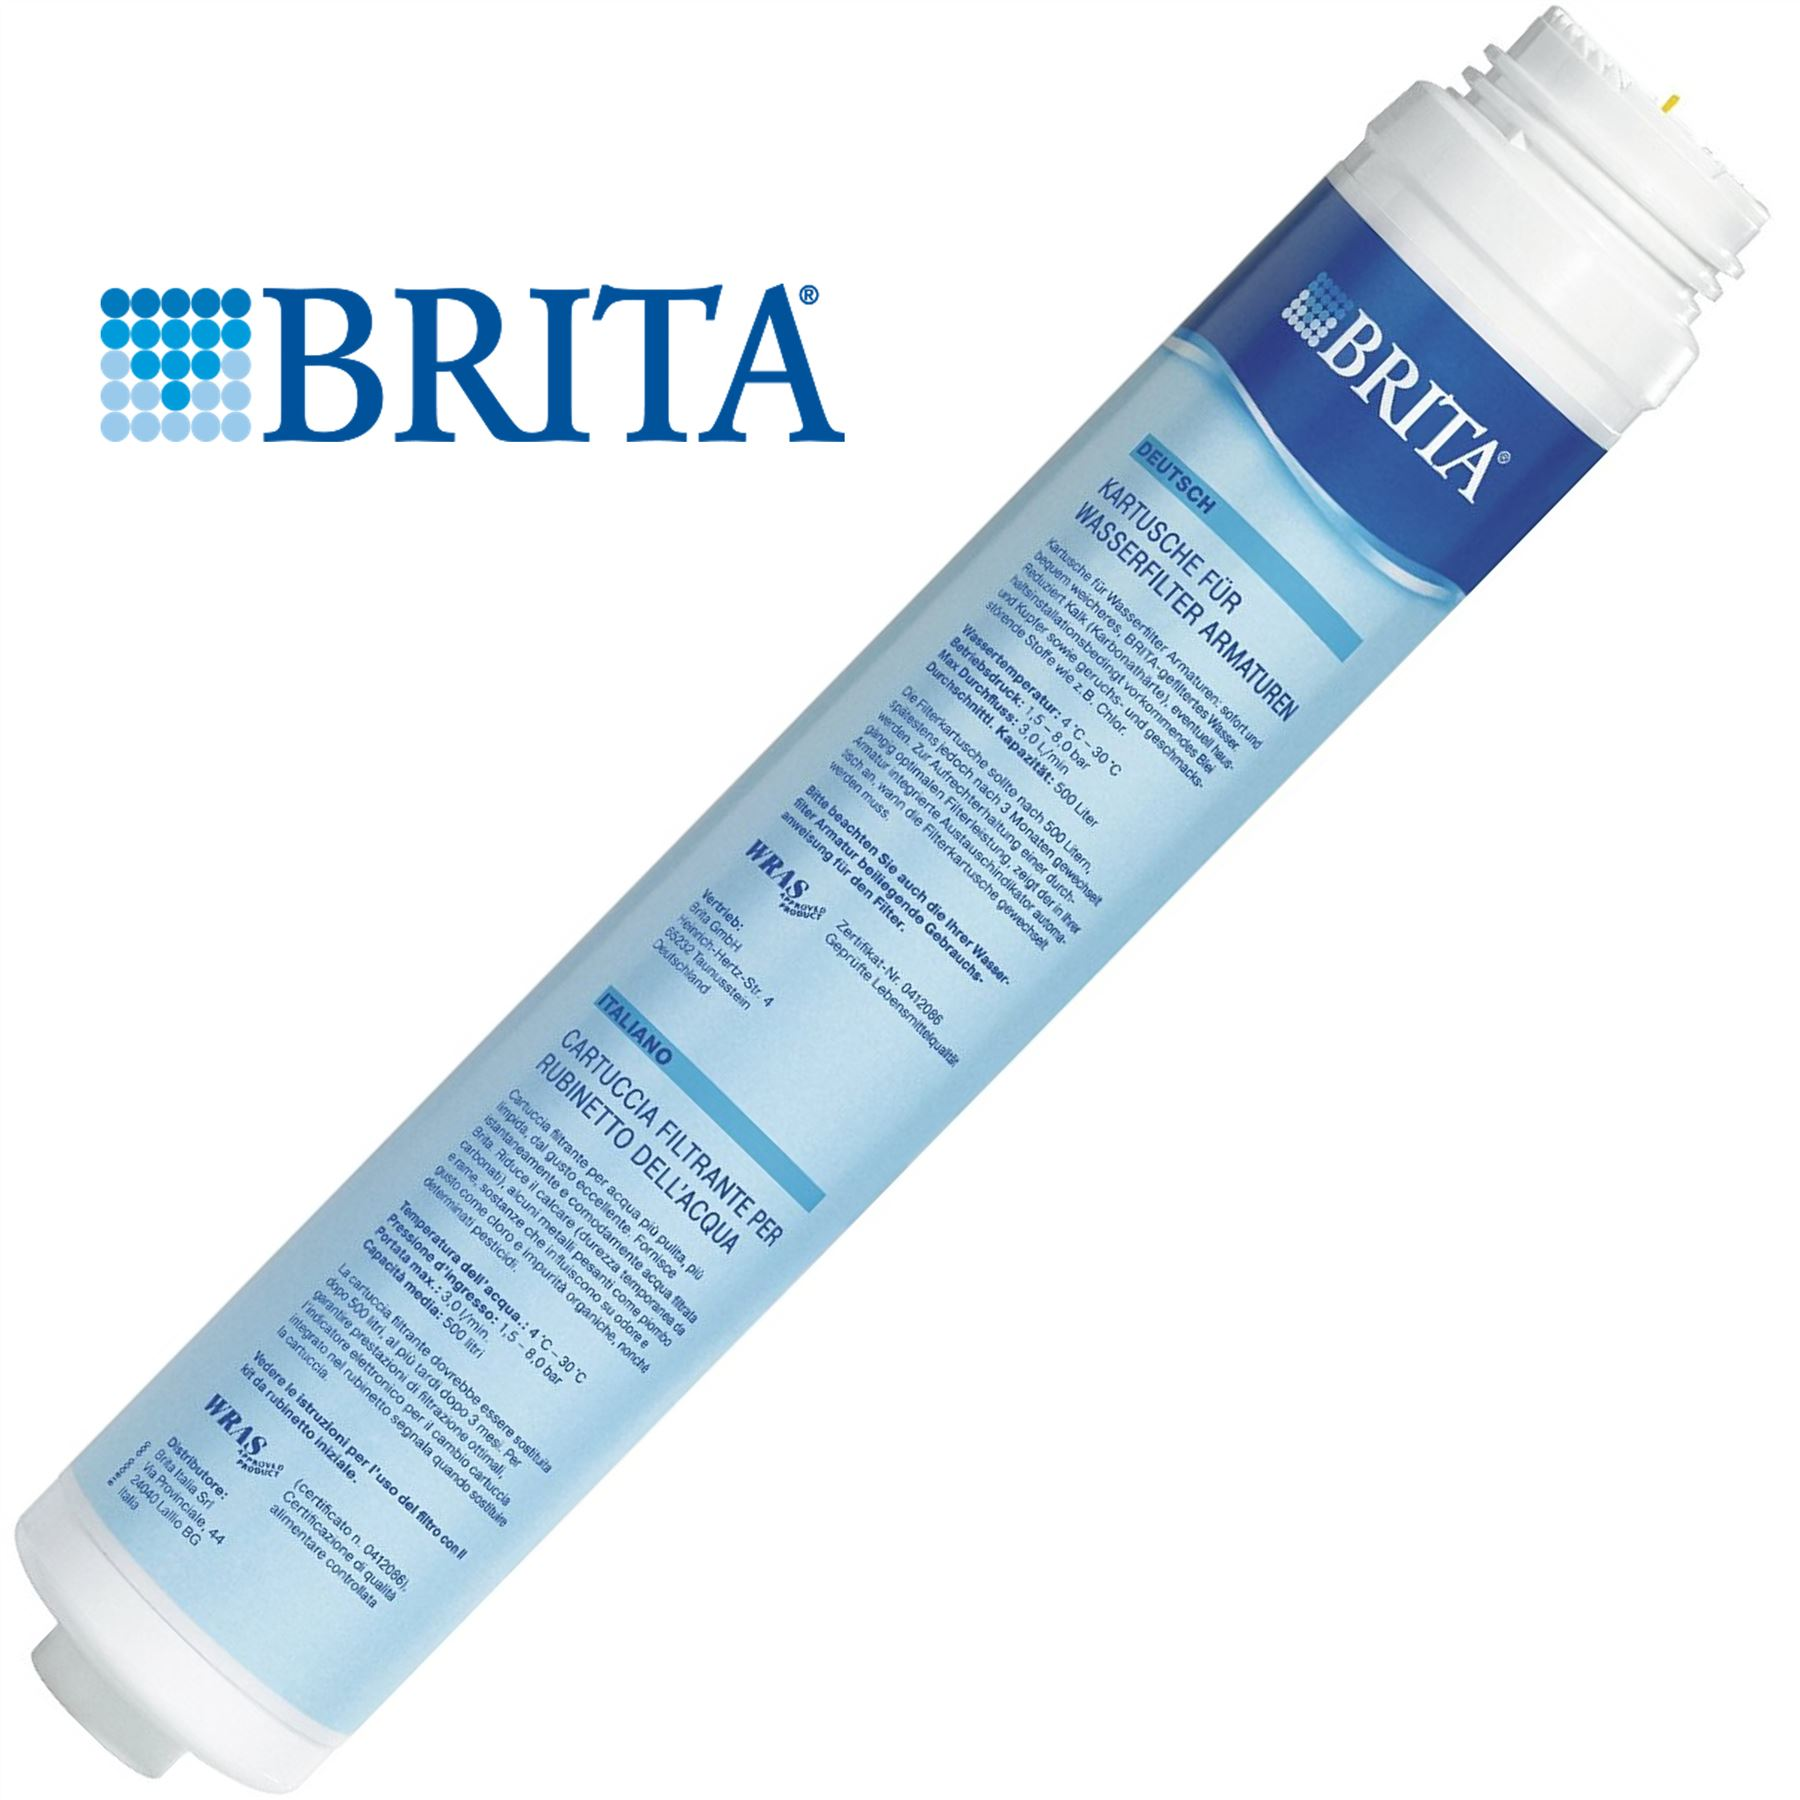 Faucet water filter for kitchen sink brita for kitchen - Item Specifics